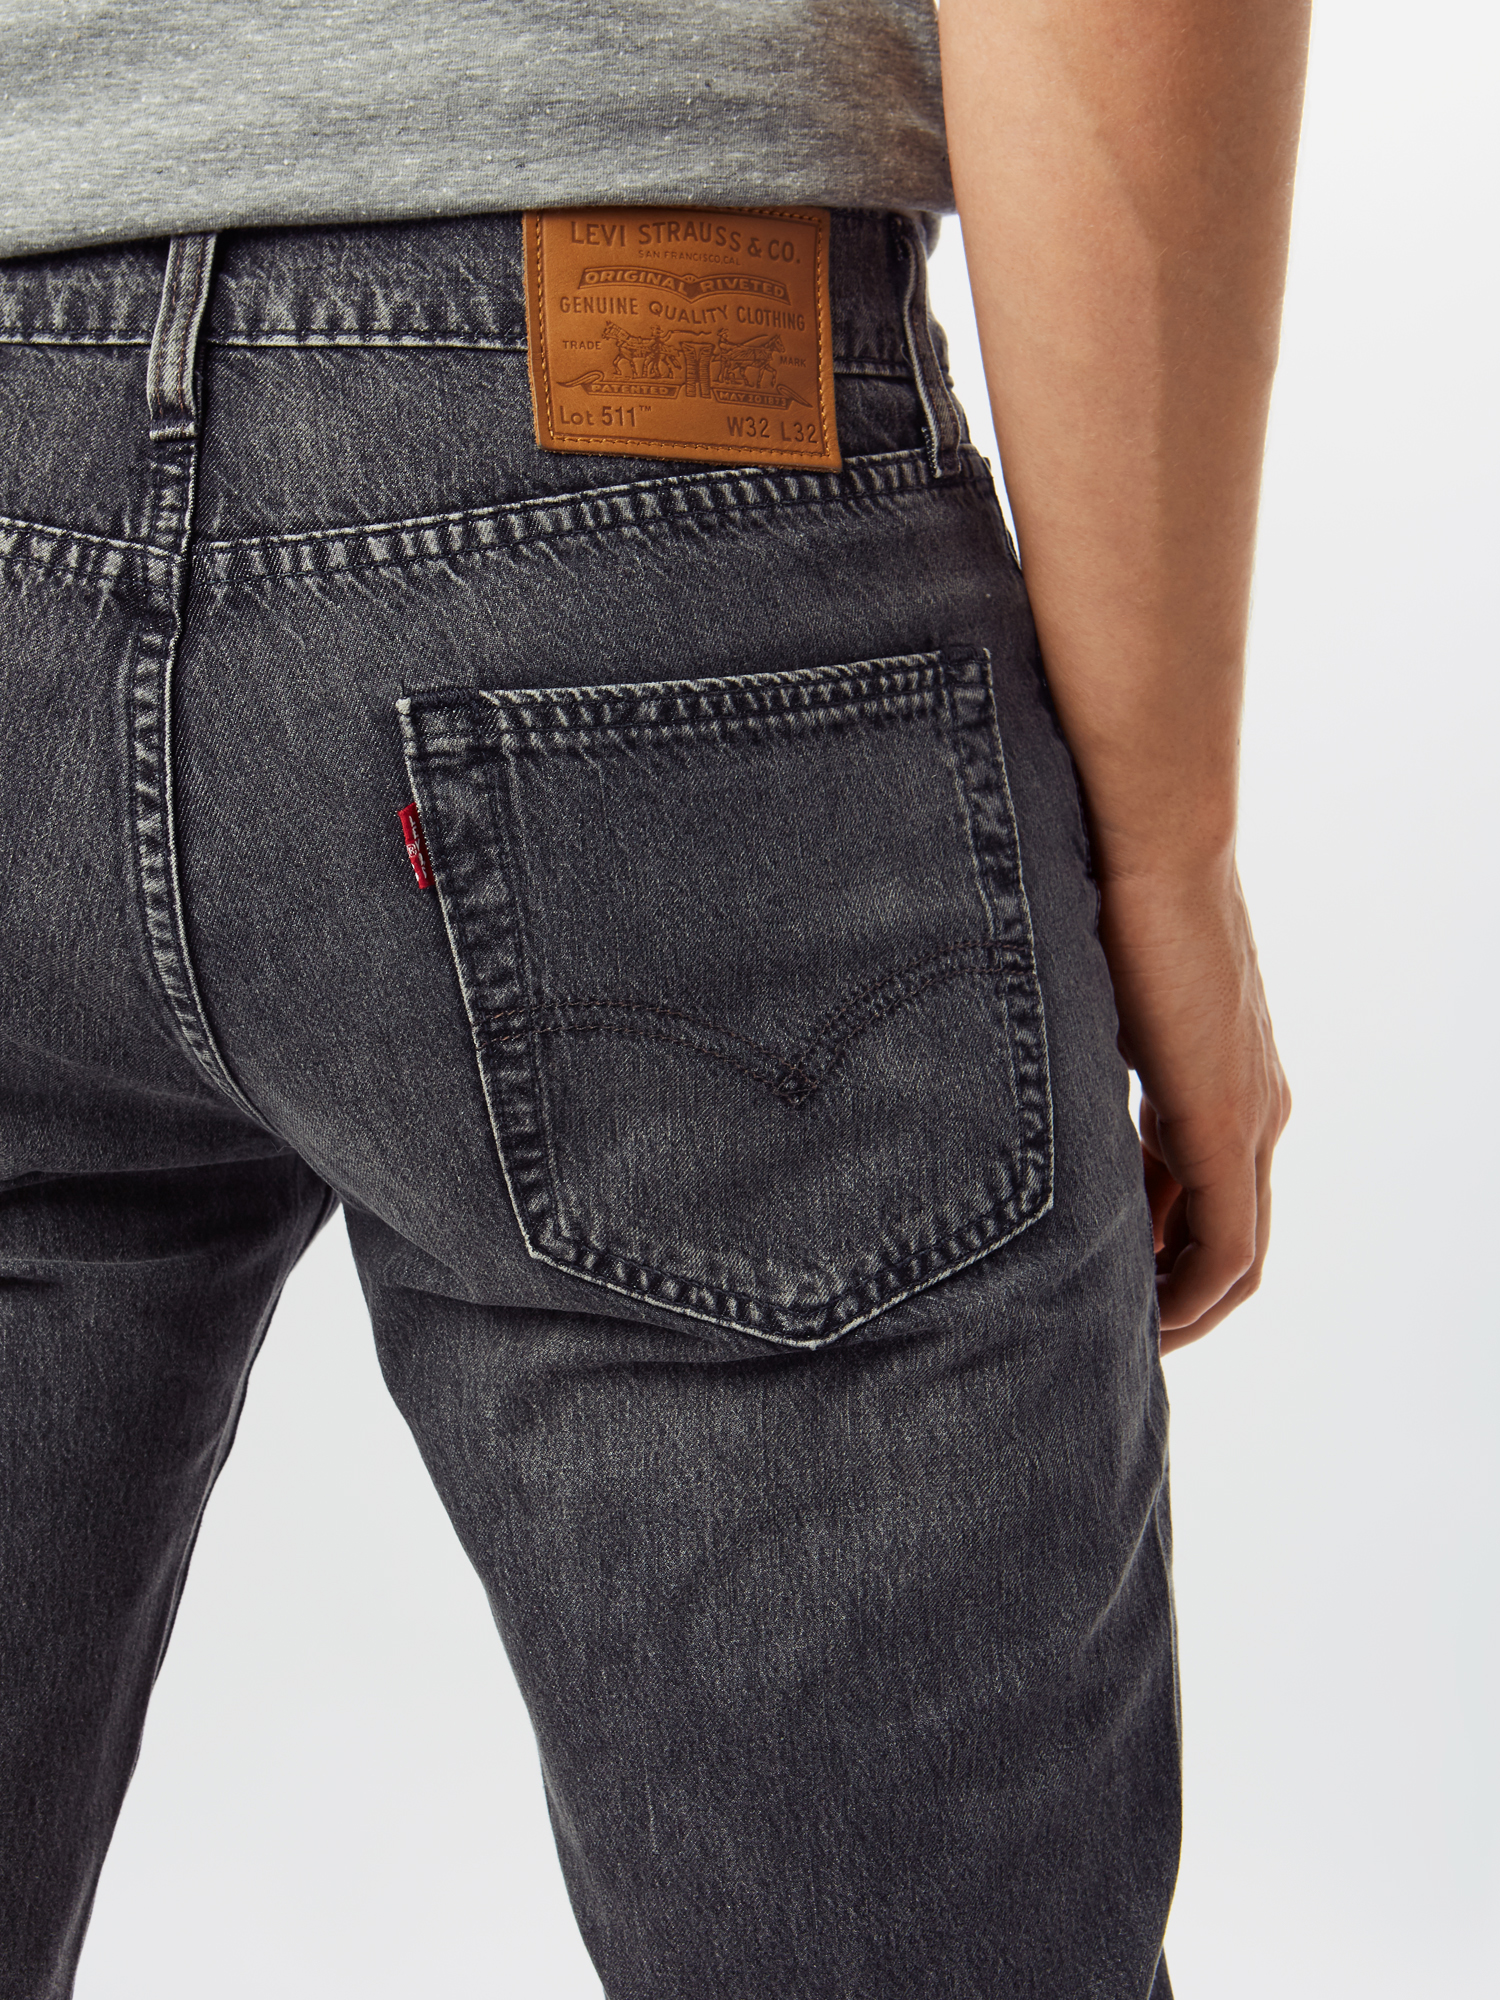 LEVI'S Jeans '511' in Grijs mzTF0qRh